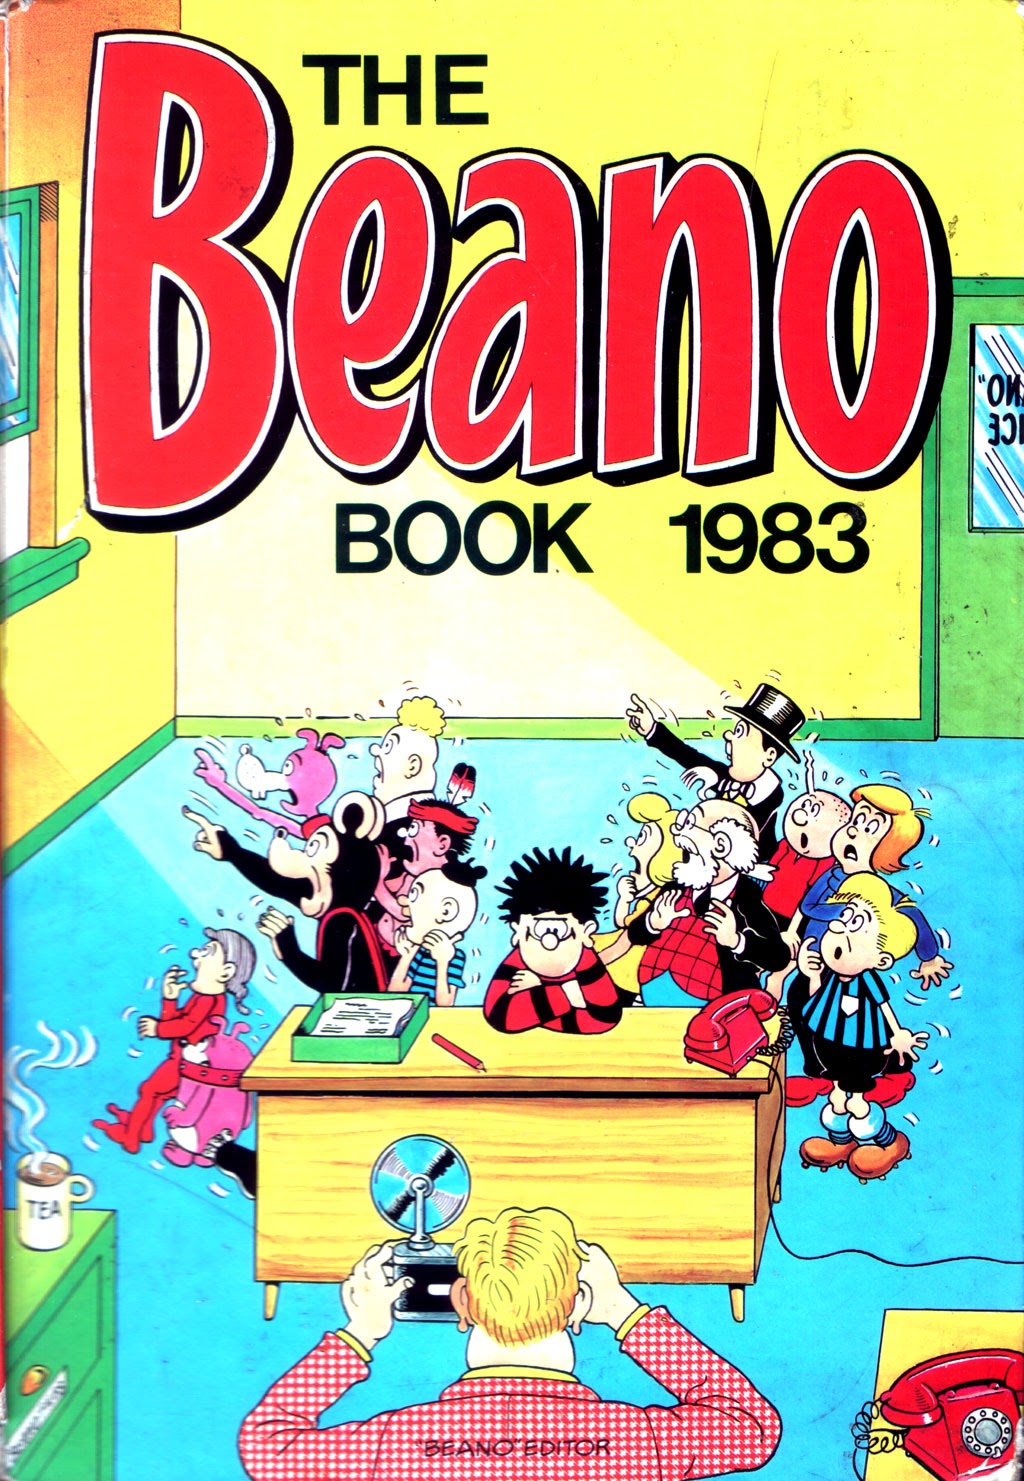 The Beano Book (Annual) 1983 Page 1